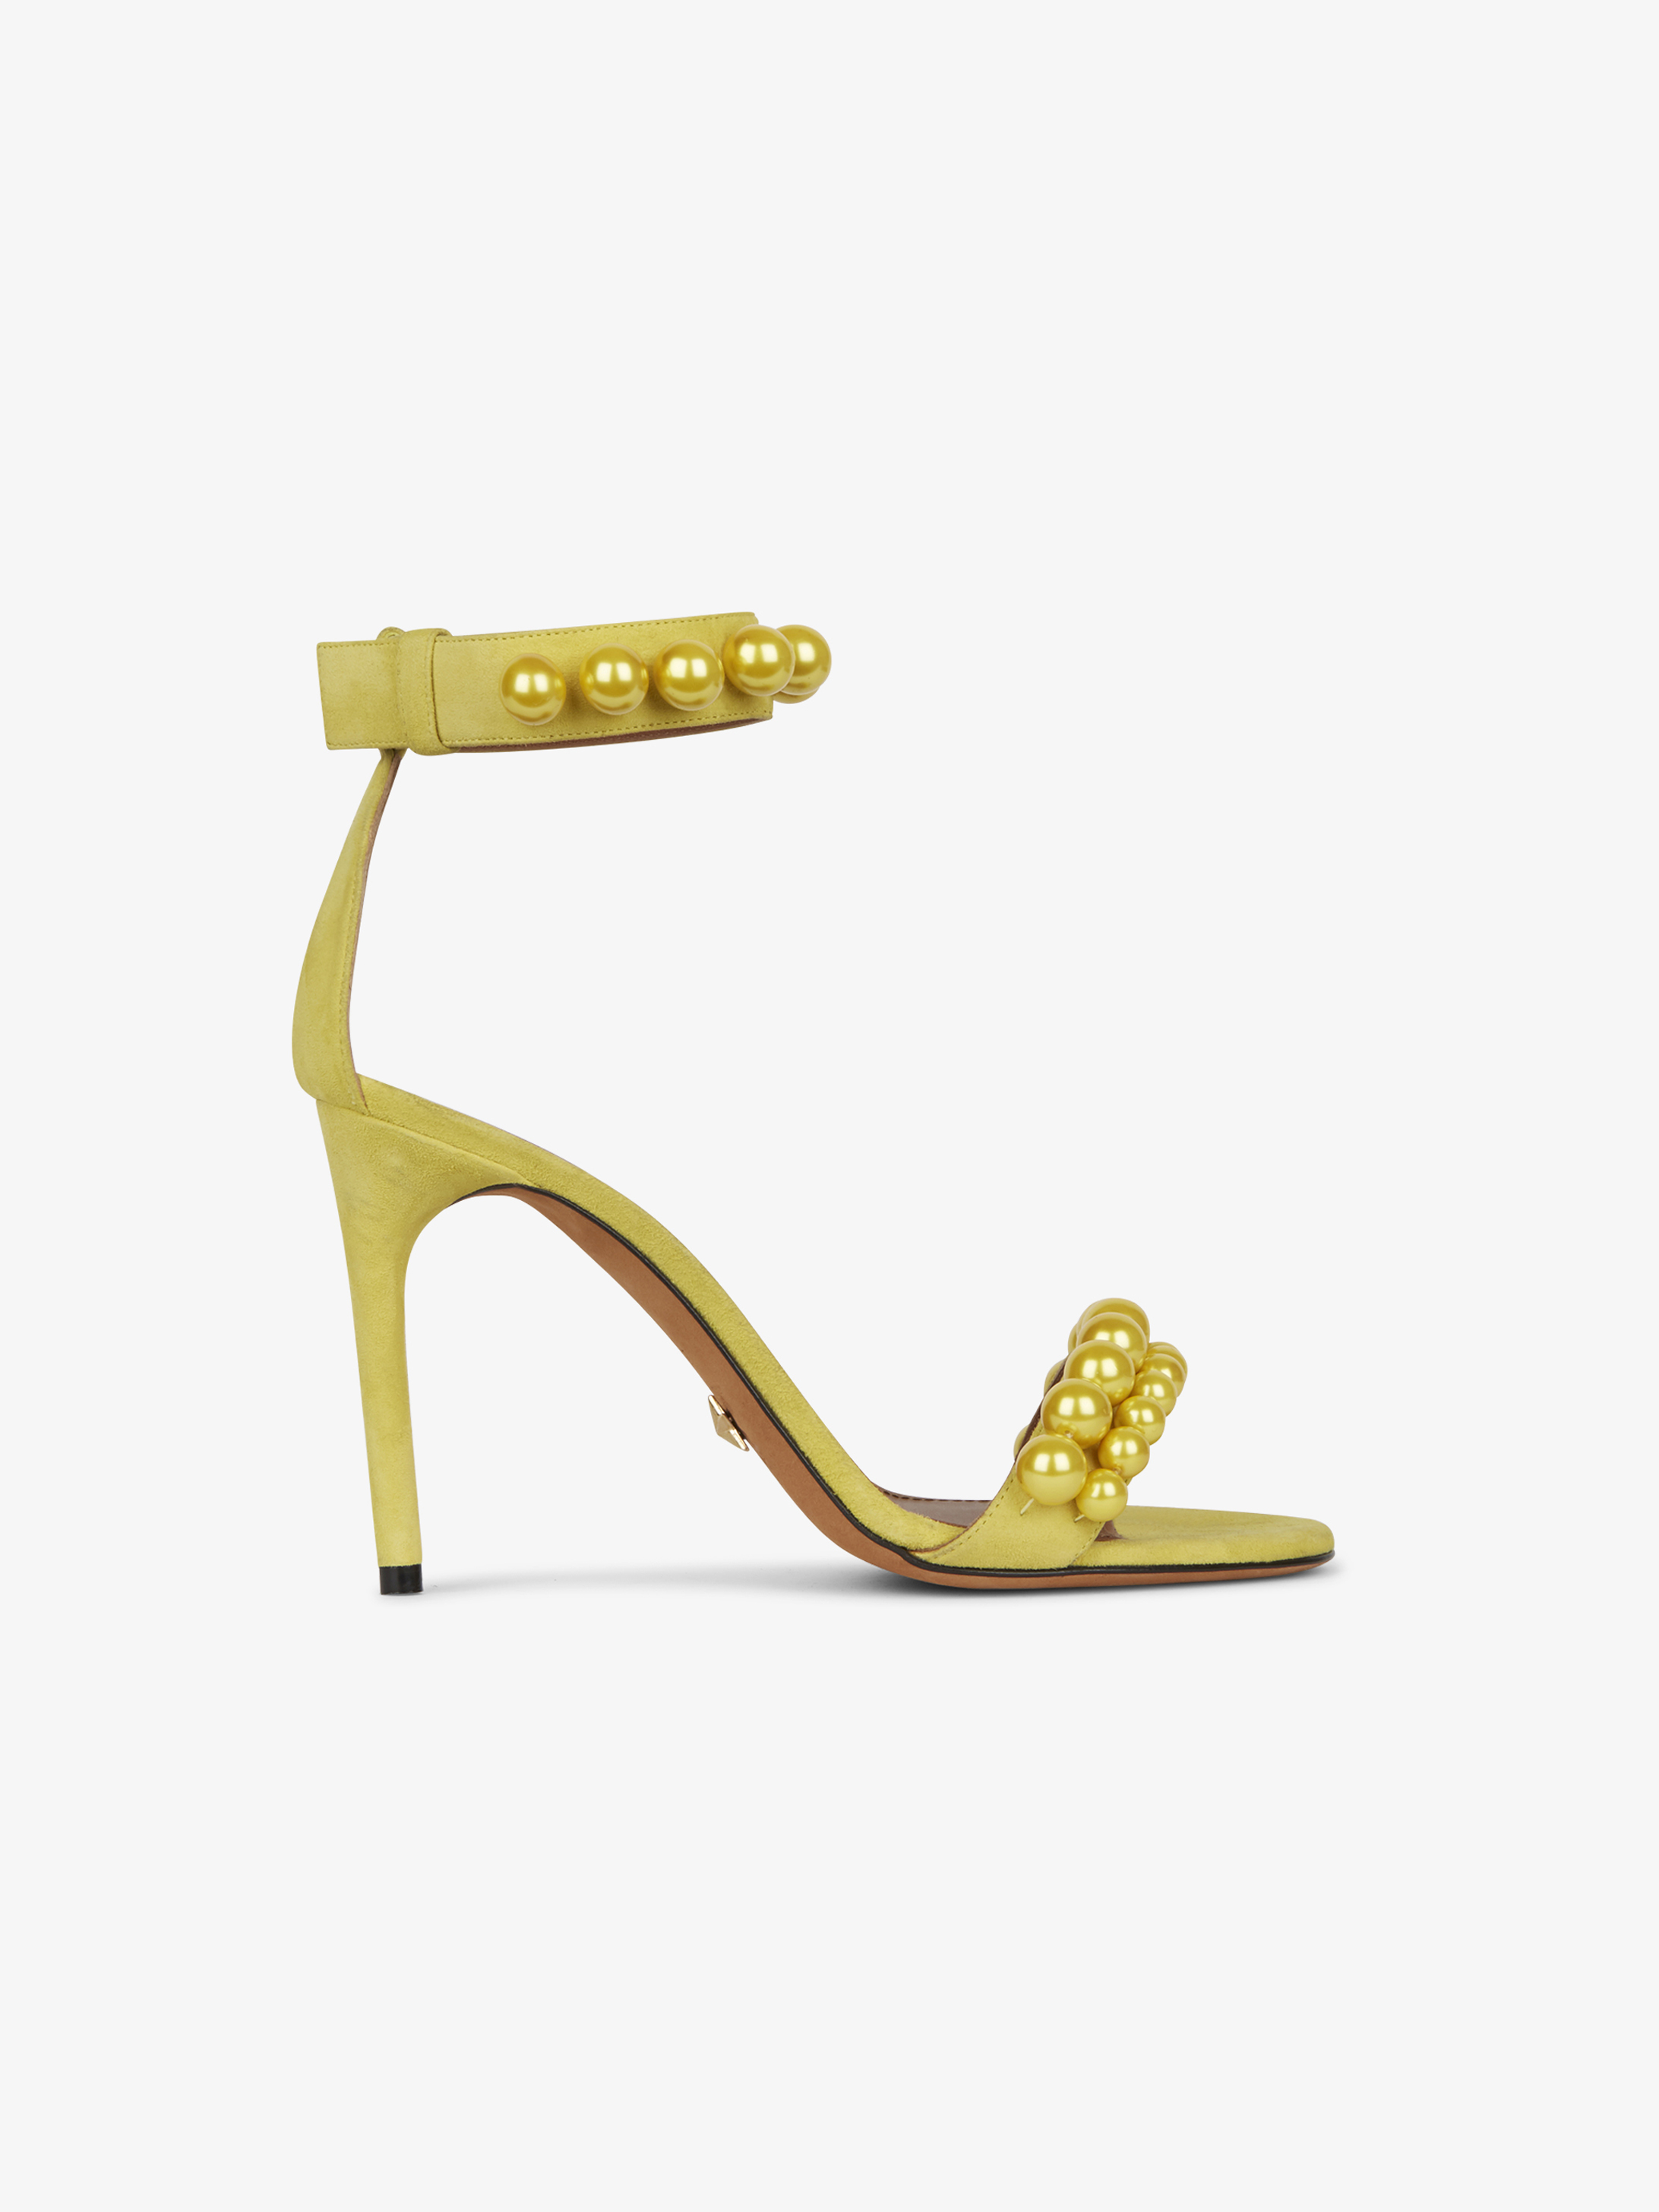 Classic sandals in leather with pearls